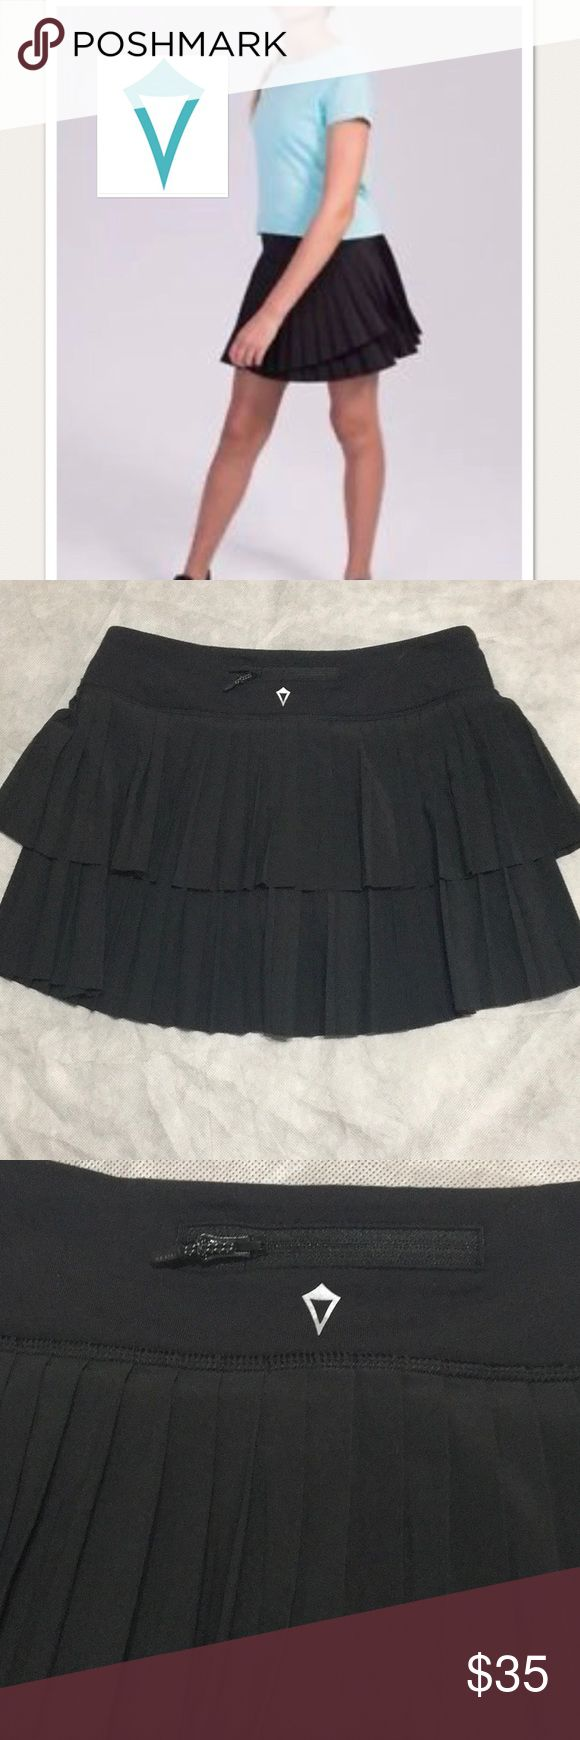 Ivivva pleat the heat skirt sz14 Black pleated skirt with shorts under like new worn washed once no flaws Ivivva Bottoms Skirts